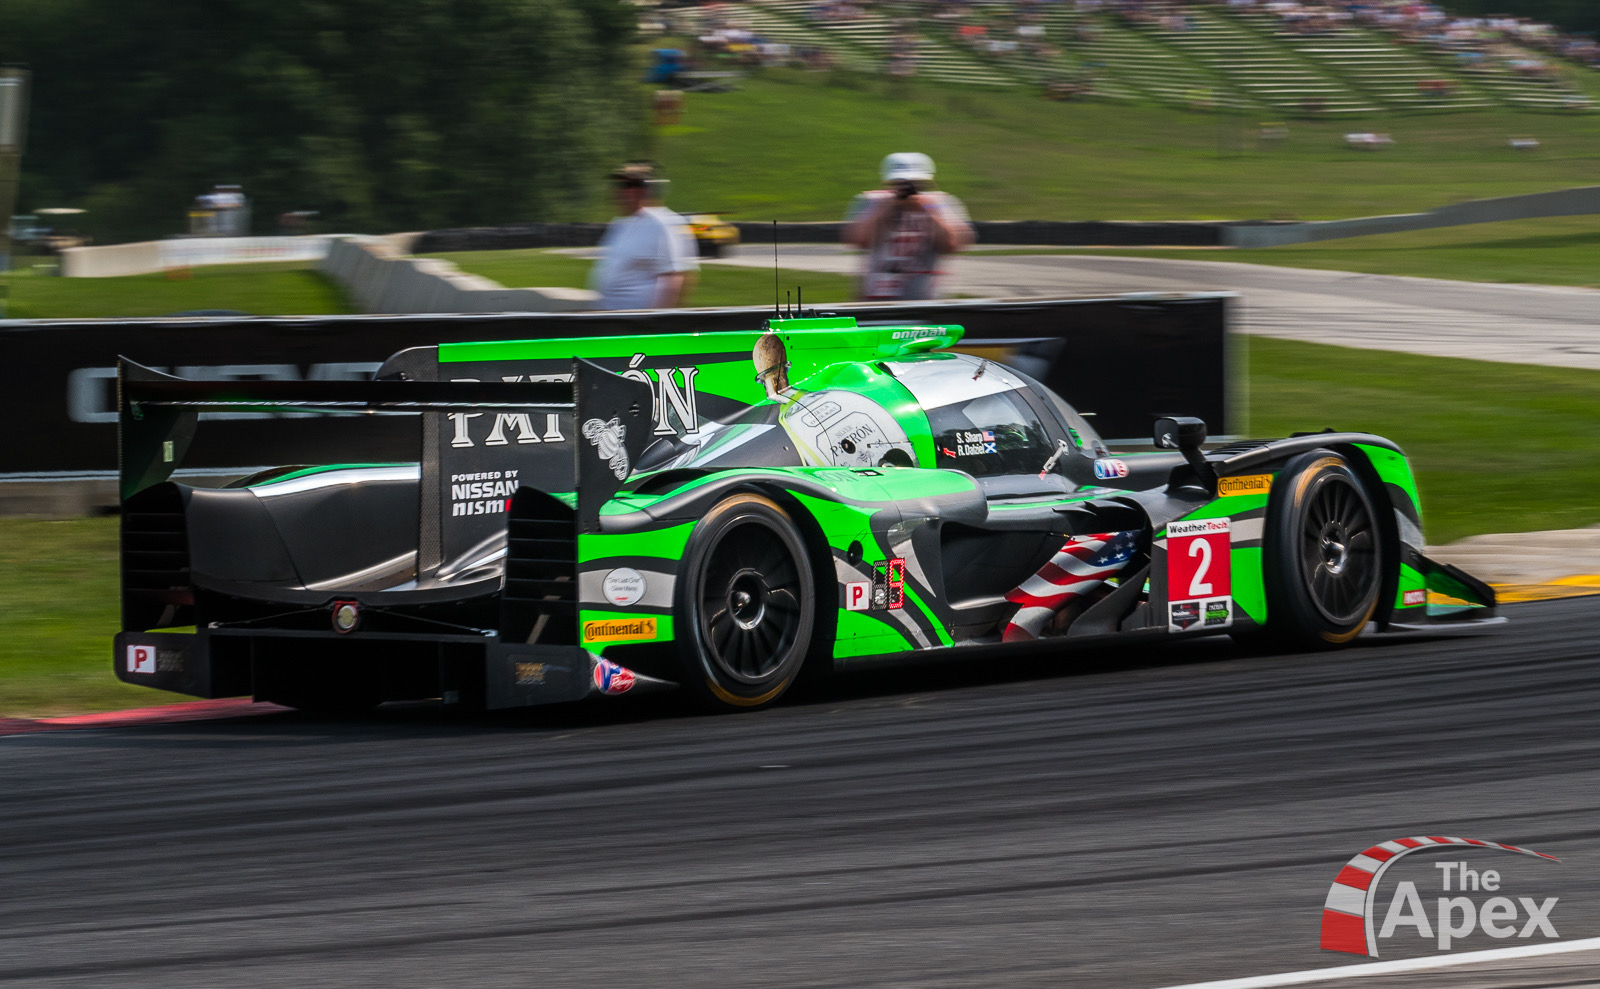 Nissan DPi apexes Turn 6 during Continental Tire IMSA race at Road America